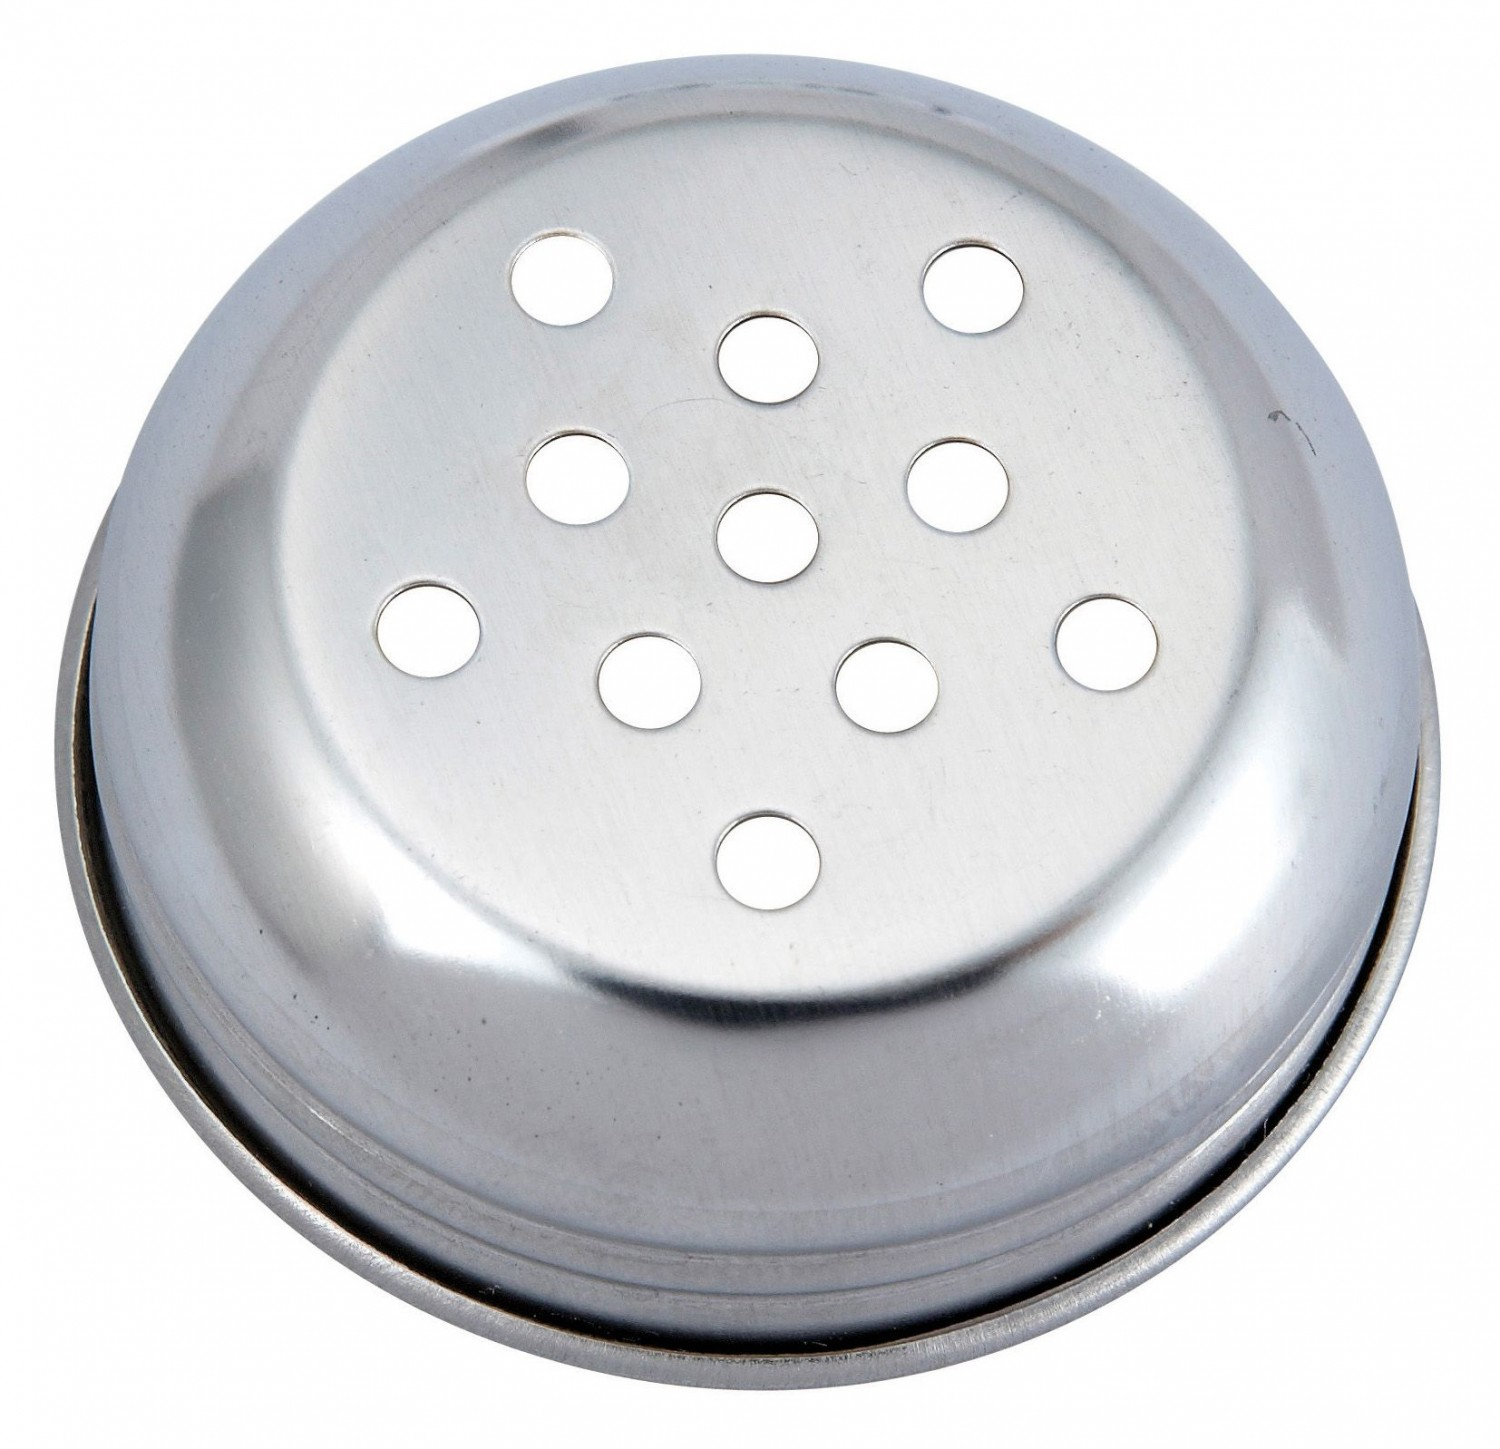 Winco G-107C Shaker Tops with Holes For G-107 - 1 doz